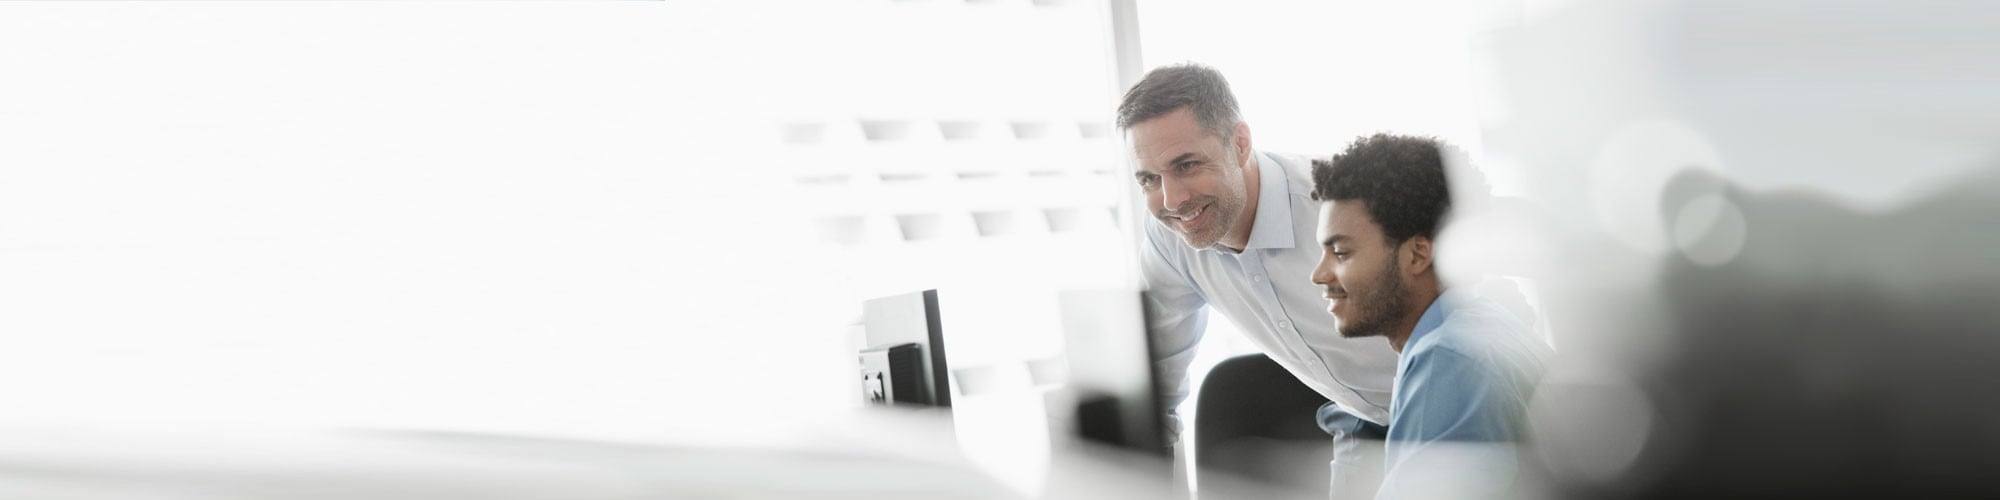 Two business professionals looking at computer